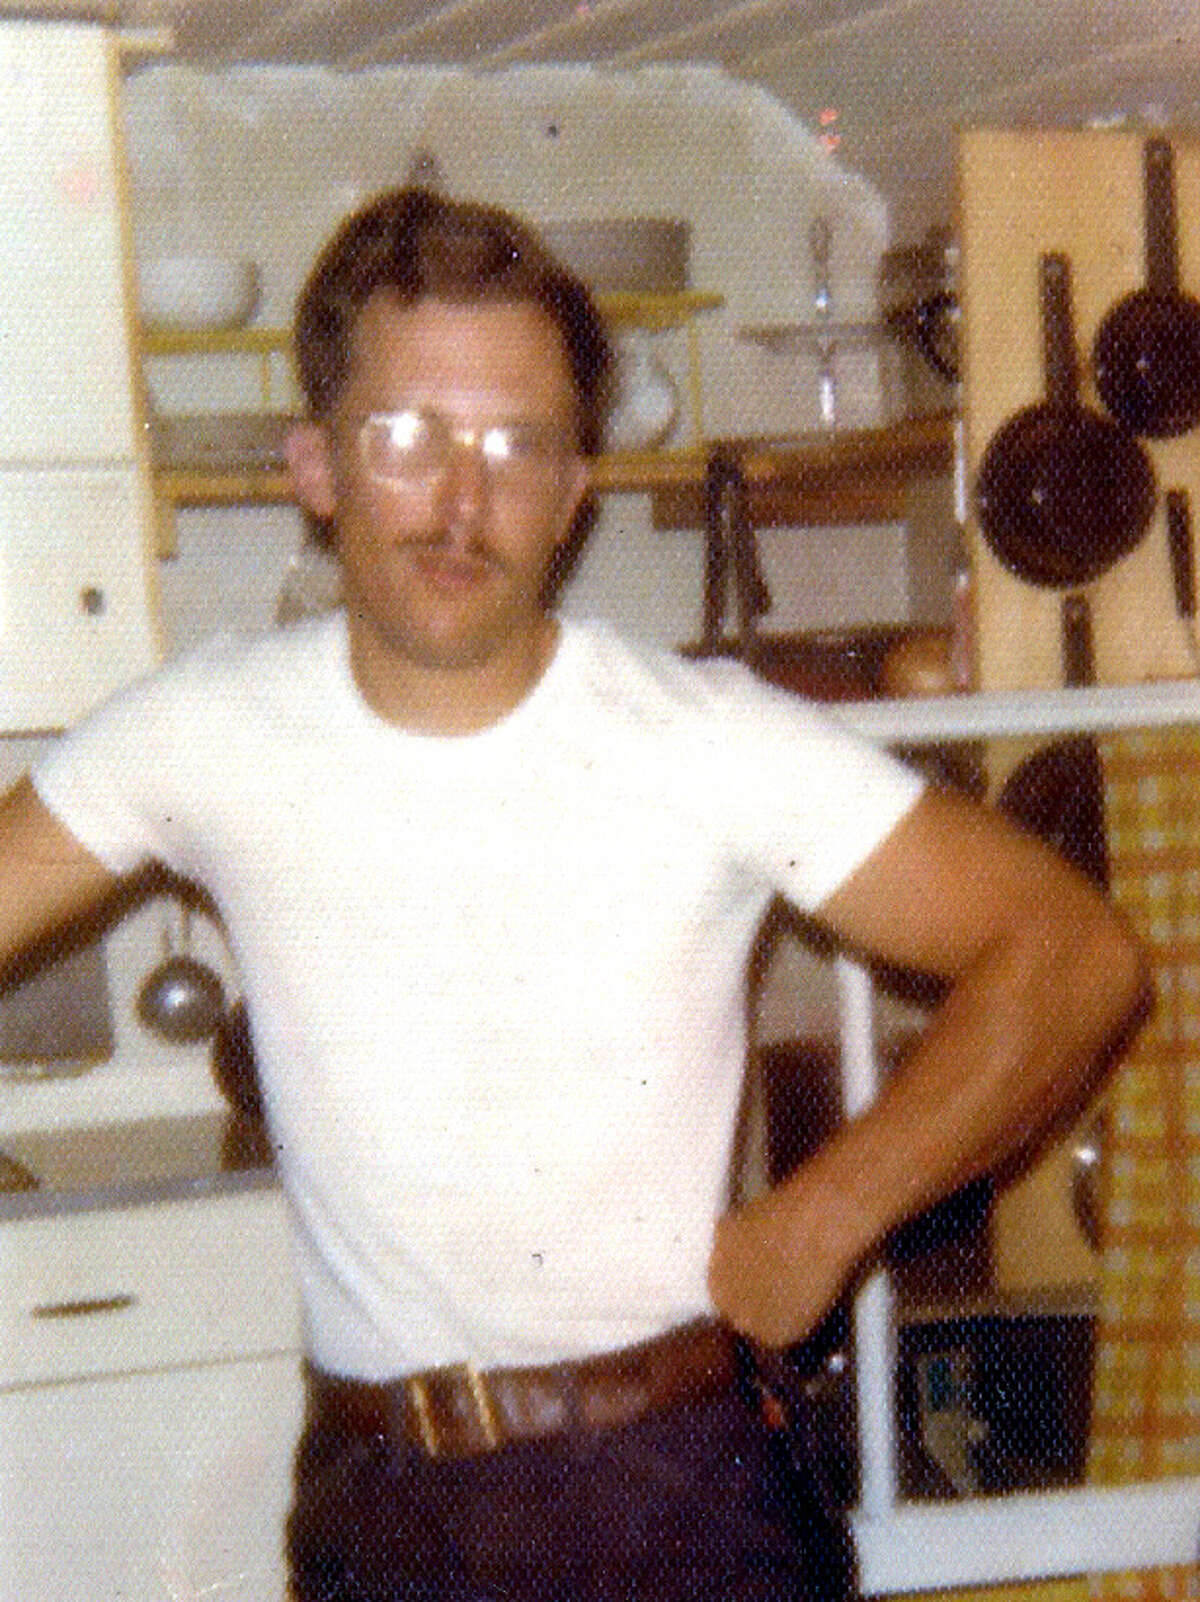 Eugene Hubert, pictured here at a cabin in southern Essex County where he is accused of sexually abusing young boys. Hubert was a custodian at St. Teresa of Avila school in Albany. Three men who were classmates at the school have recounted sexual incidents with Hubert in the 1970s. Two of the men said Hubert raped them. A third, who was raped by a priest in a separate case, said he ran when Hubert exposed himself in a school locker room. Hubert, of Warrensburg, died in 1997.